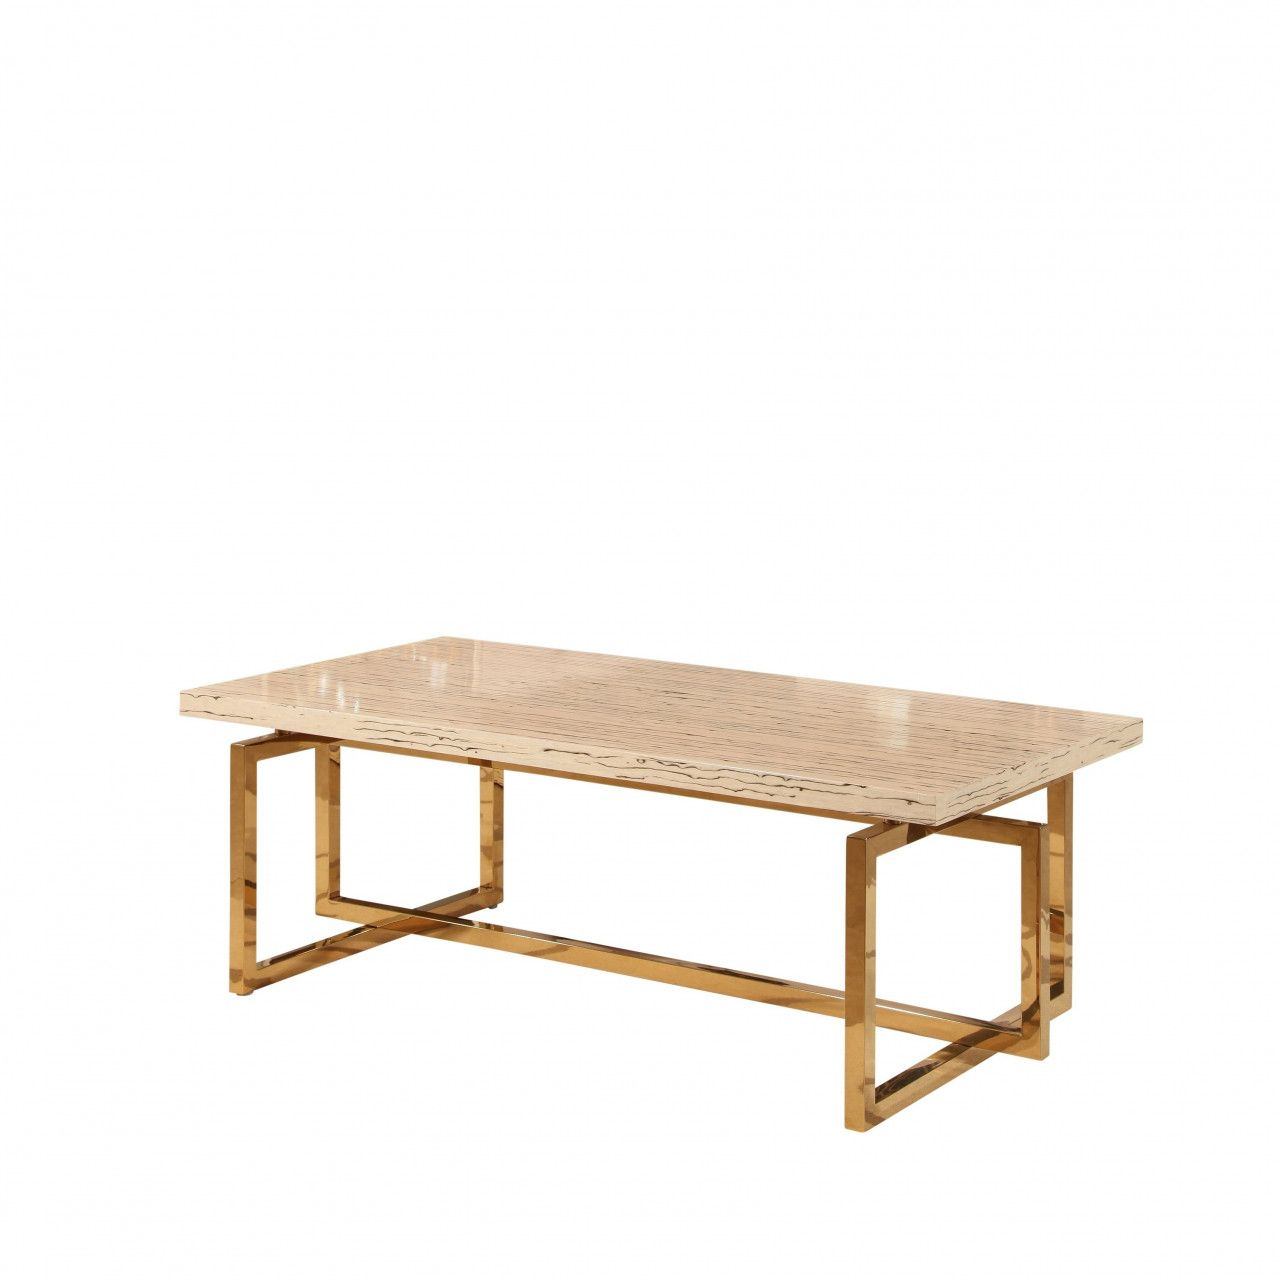 201 Lovely 40 Inch Square Coffee Table 2018 Coffee Table Wood